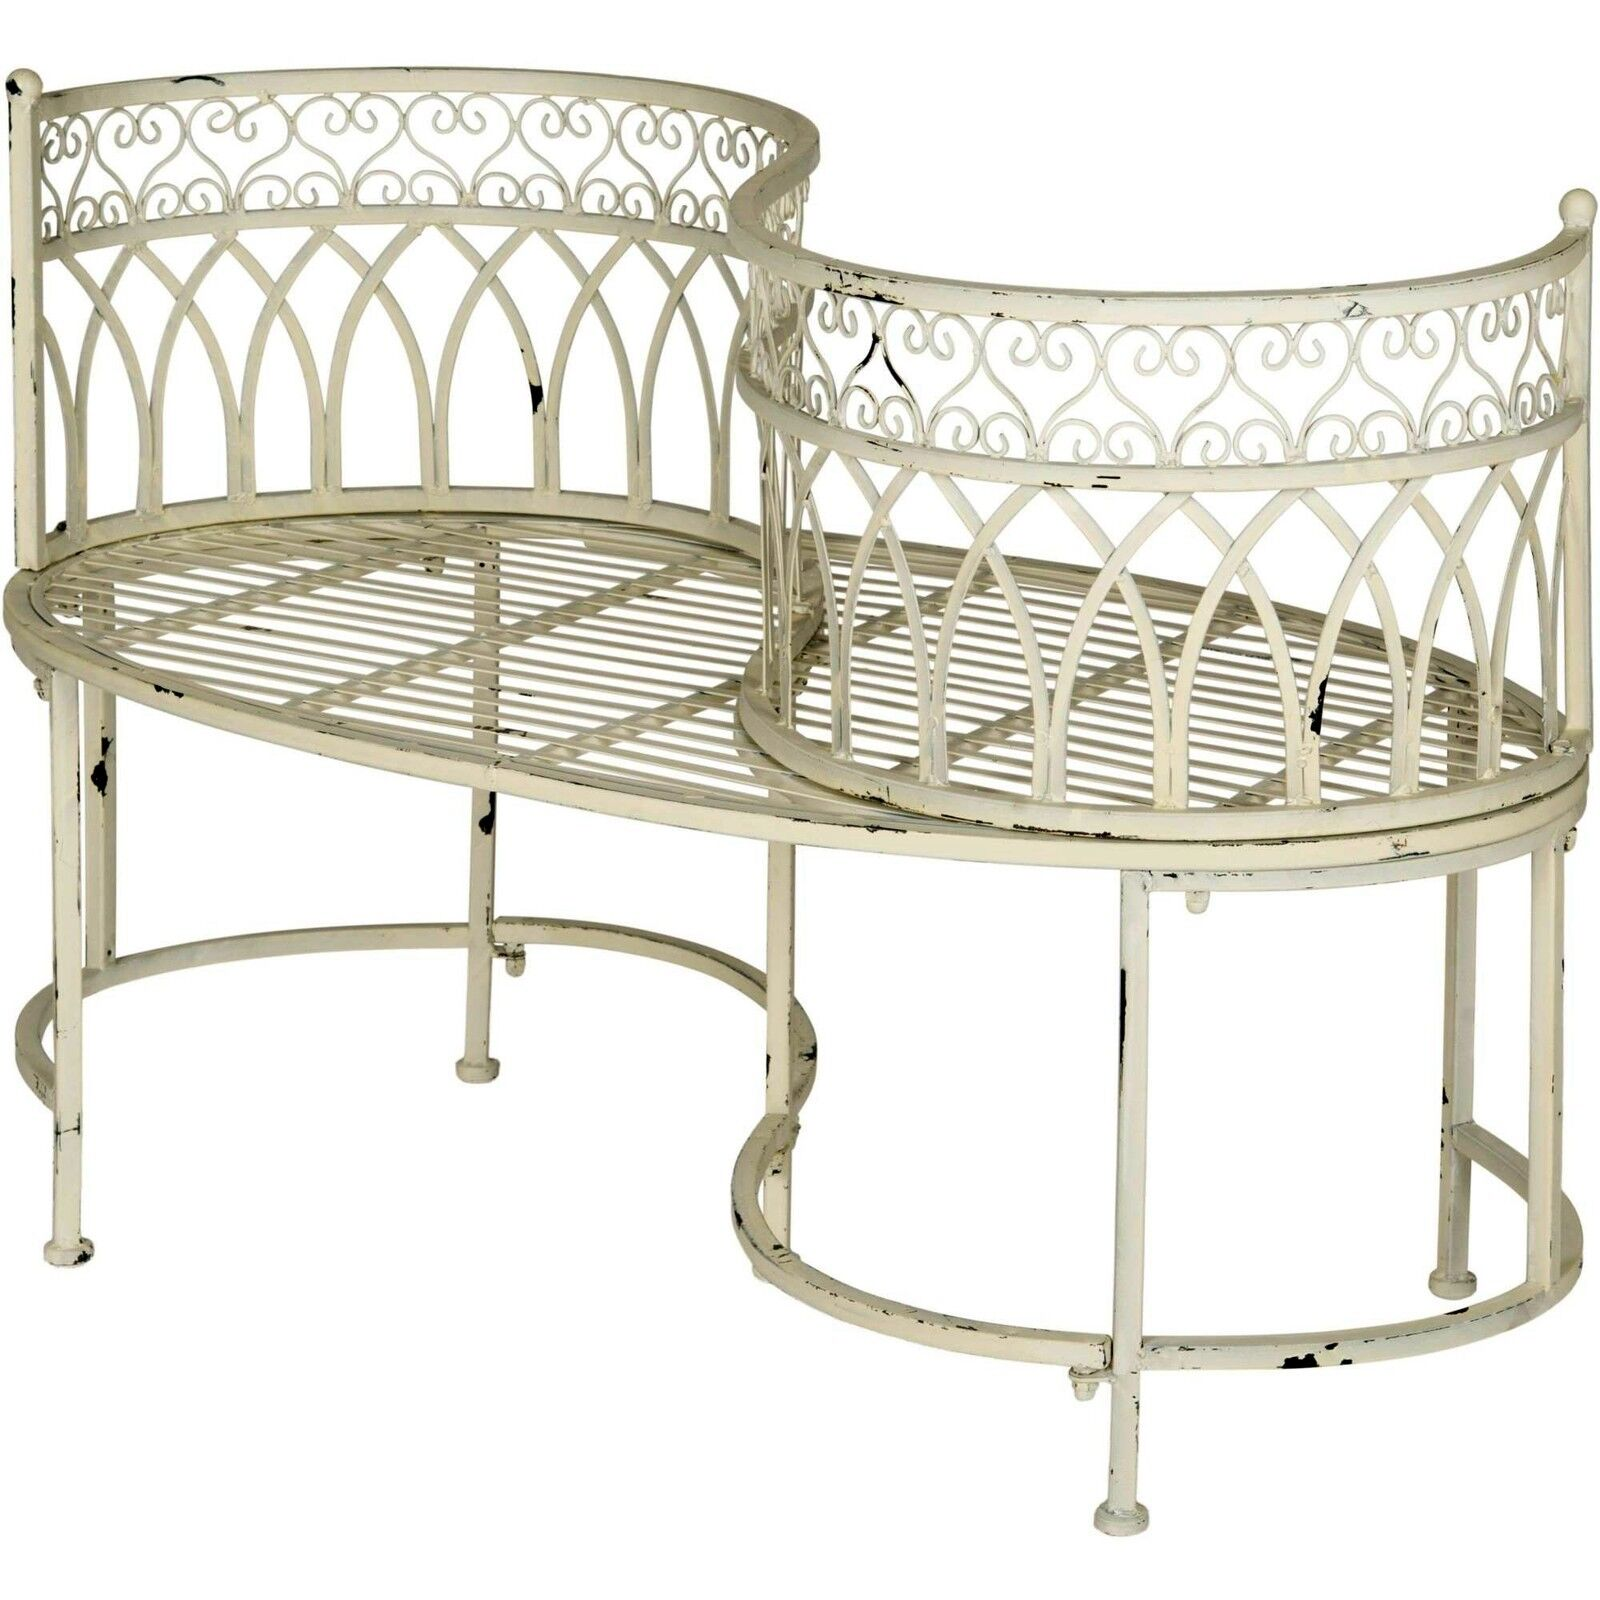 Details About Kissing Bench Curved Metal Tete A Tete Garden Chair Outdoor Vintage Patio Seat